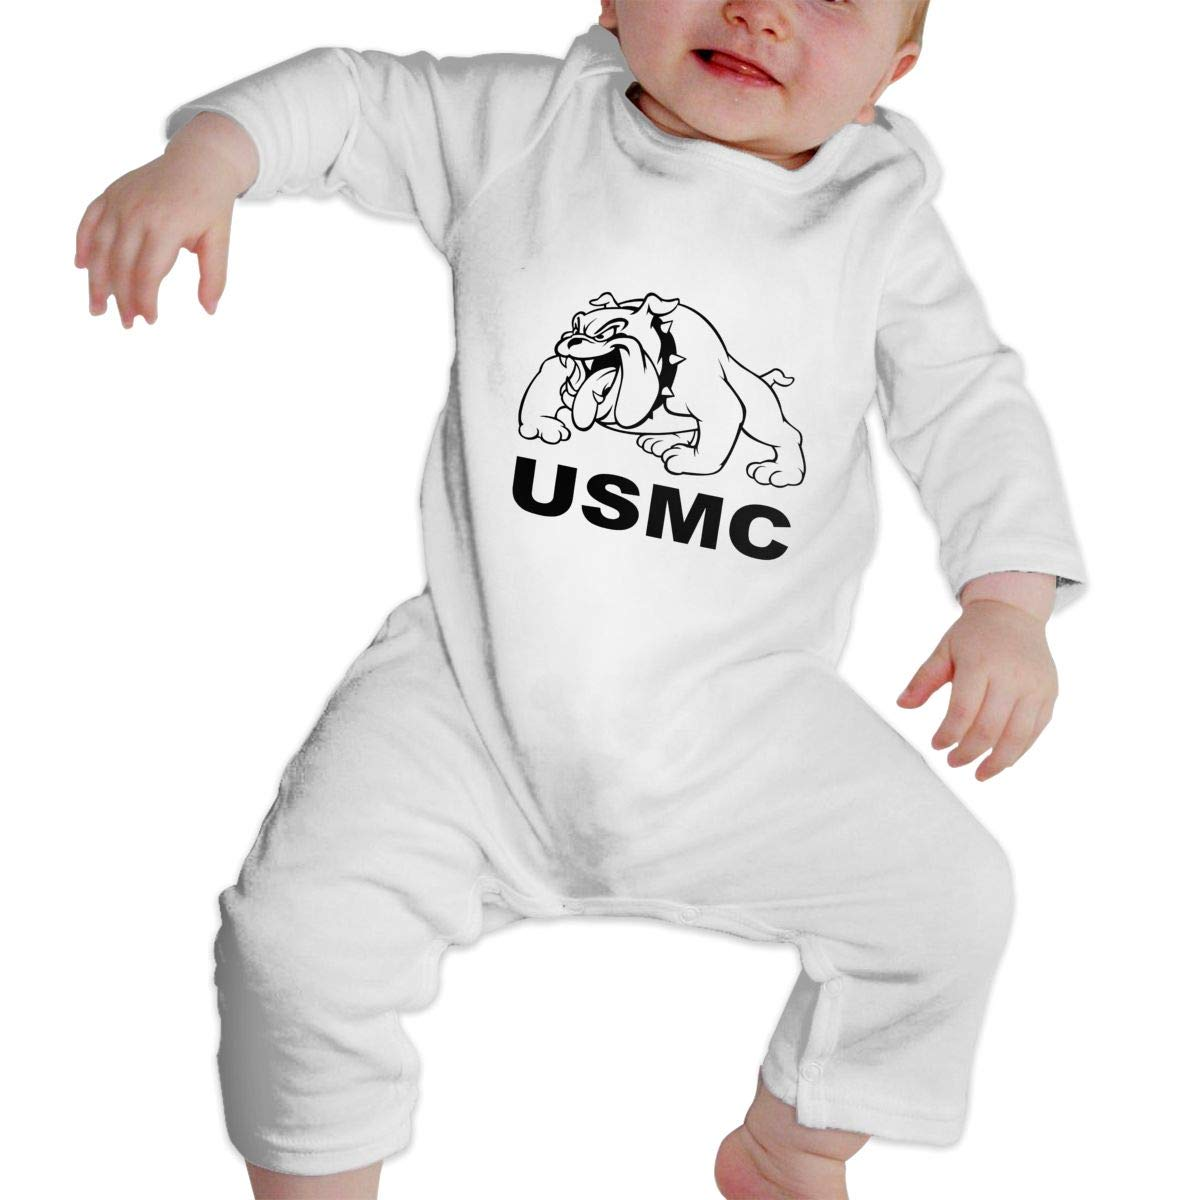 MiNgosRY Marine Corps Bulldog Newborn Baby Long Sleeve Bodysuits Rompers Outfits